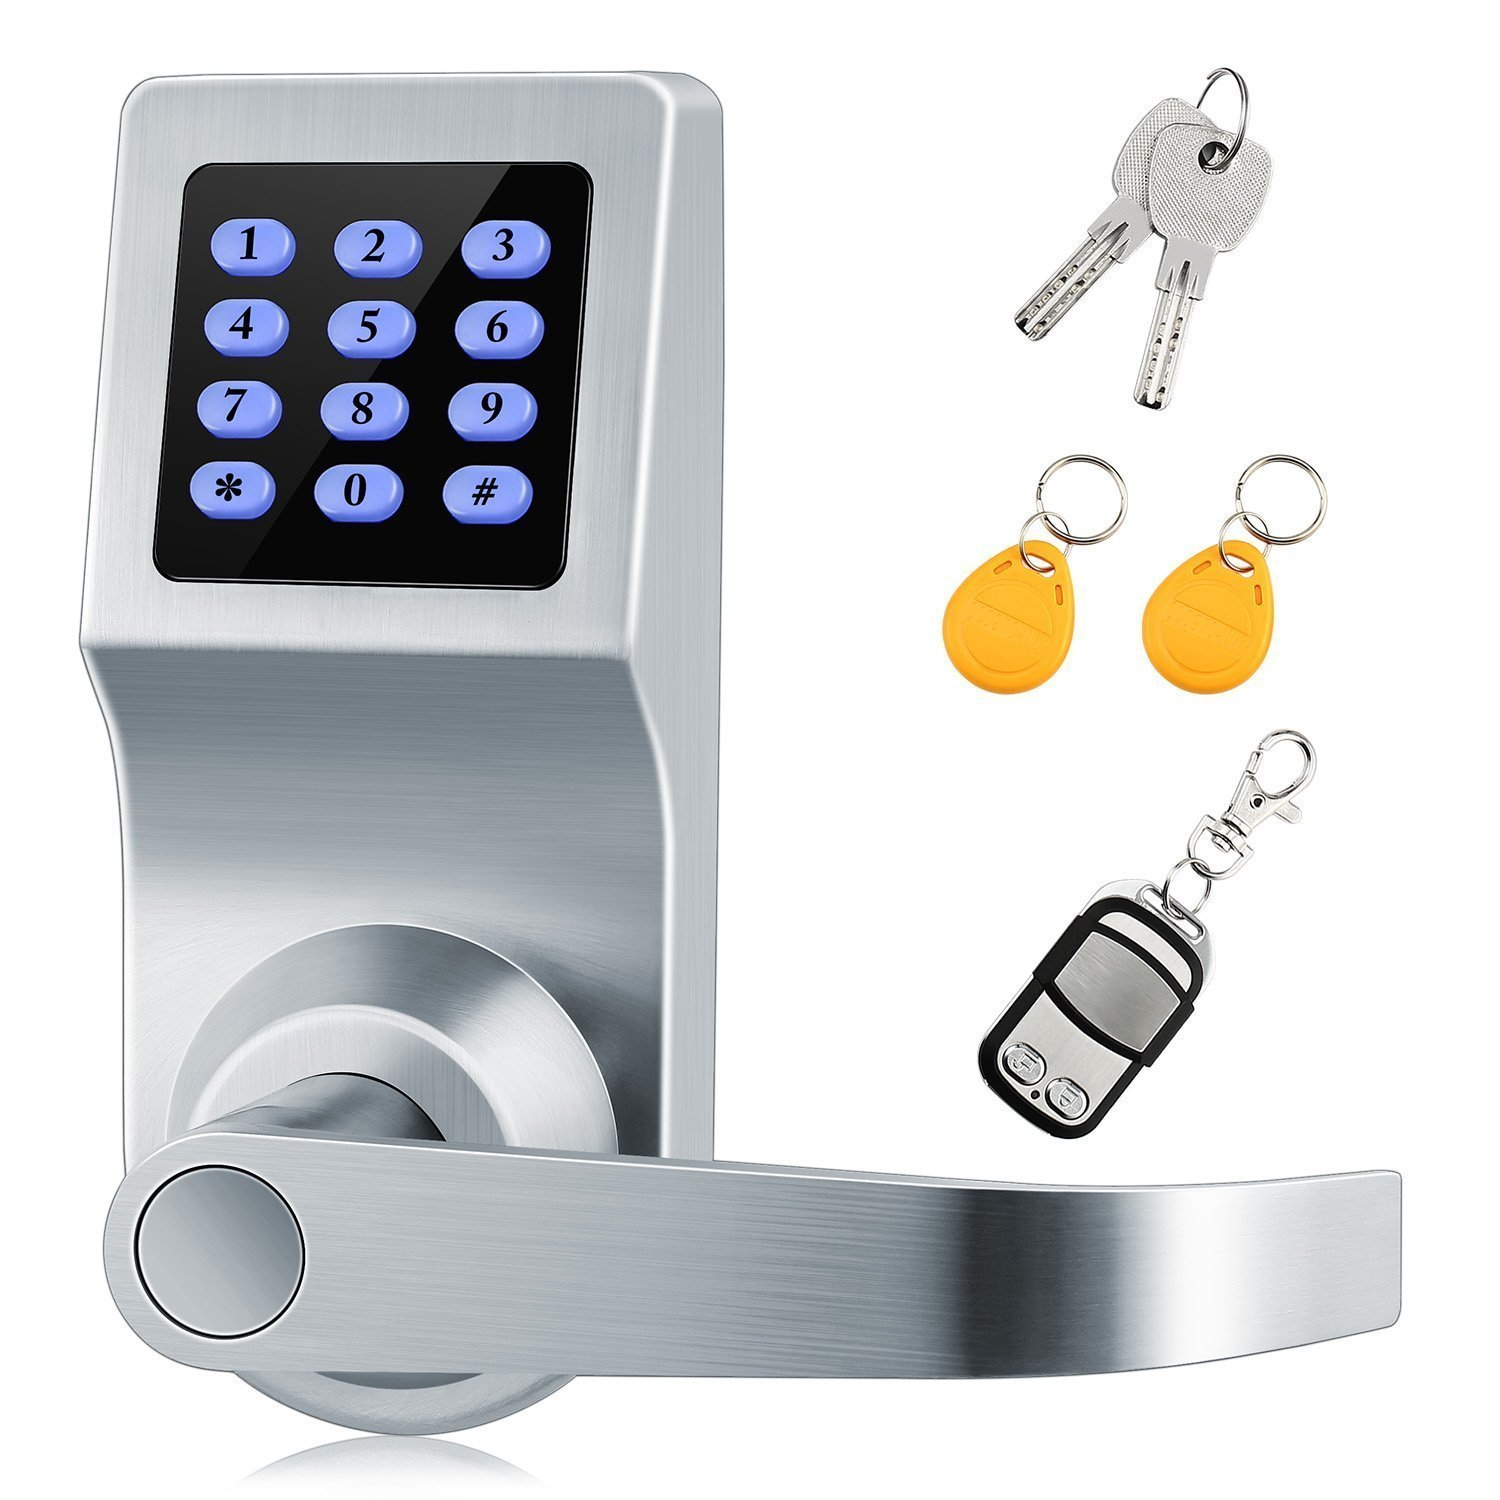 Digital Lock,XINDA Lock with Remote control,Password,Card and Metal key.Door Control Keypads with Adjustable hand,Perfect for Office & Home(Silvery)